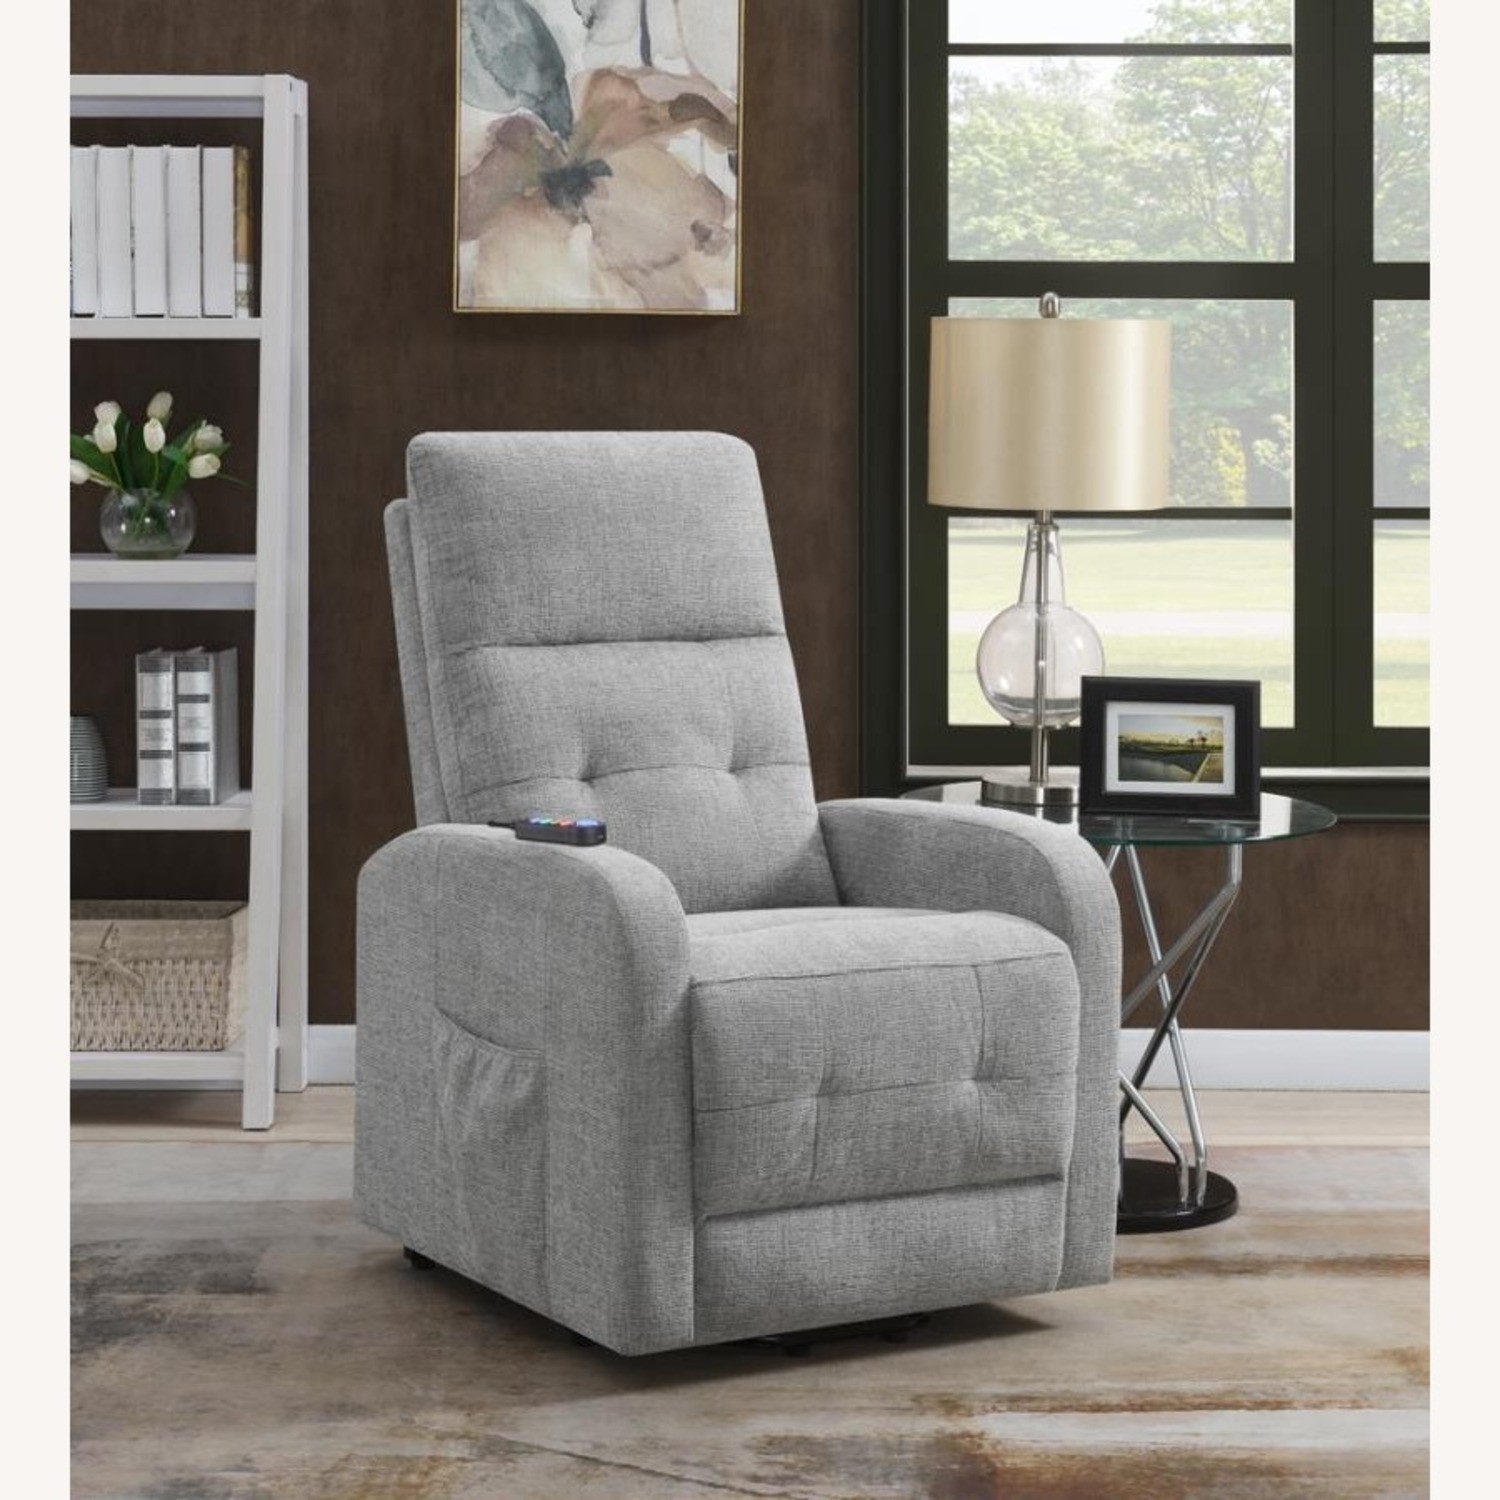 Power Lift Massage Chair In Grey Fabric - image-7